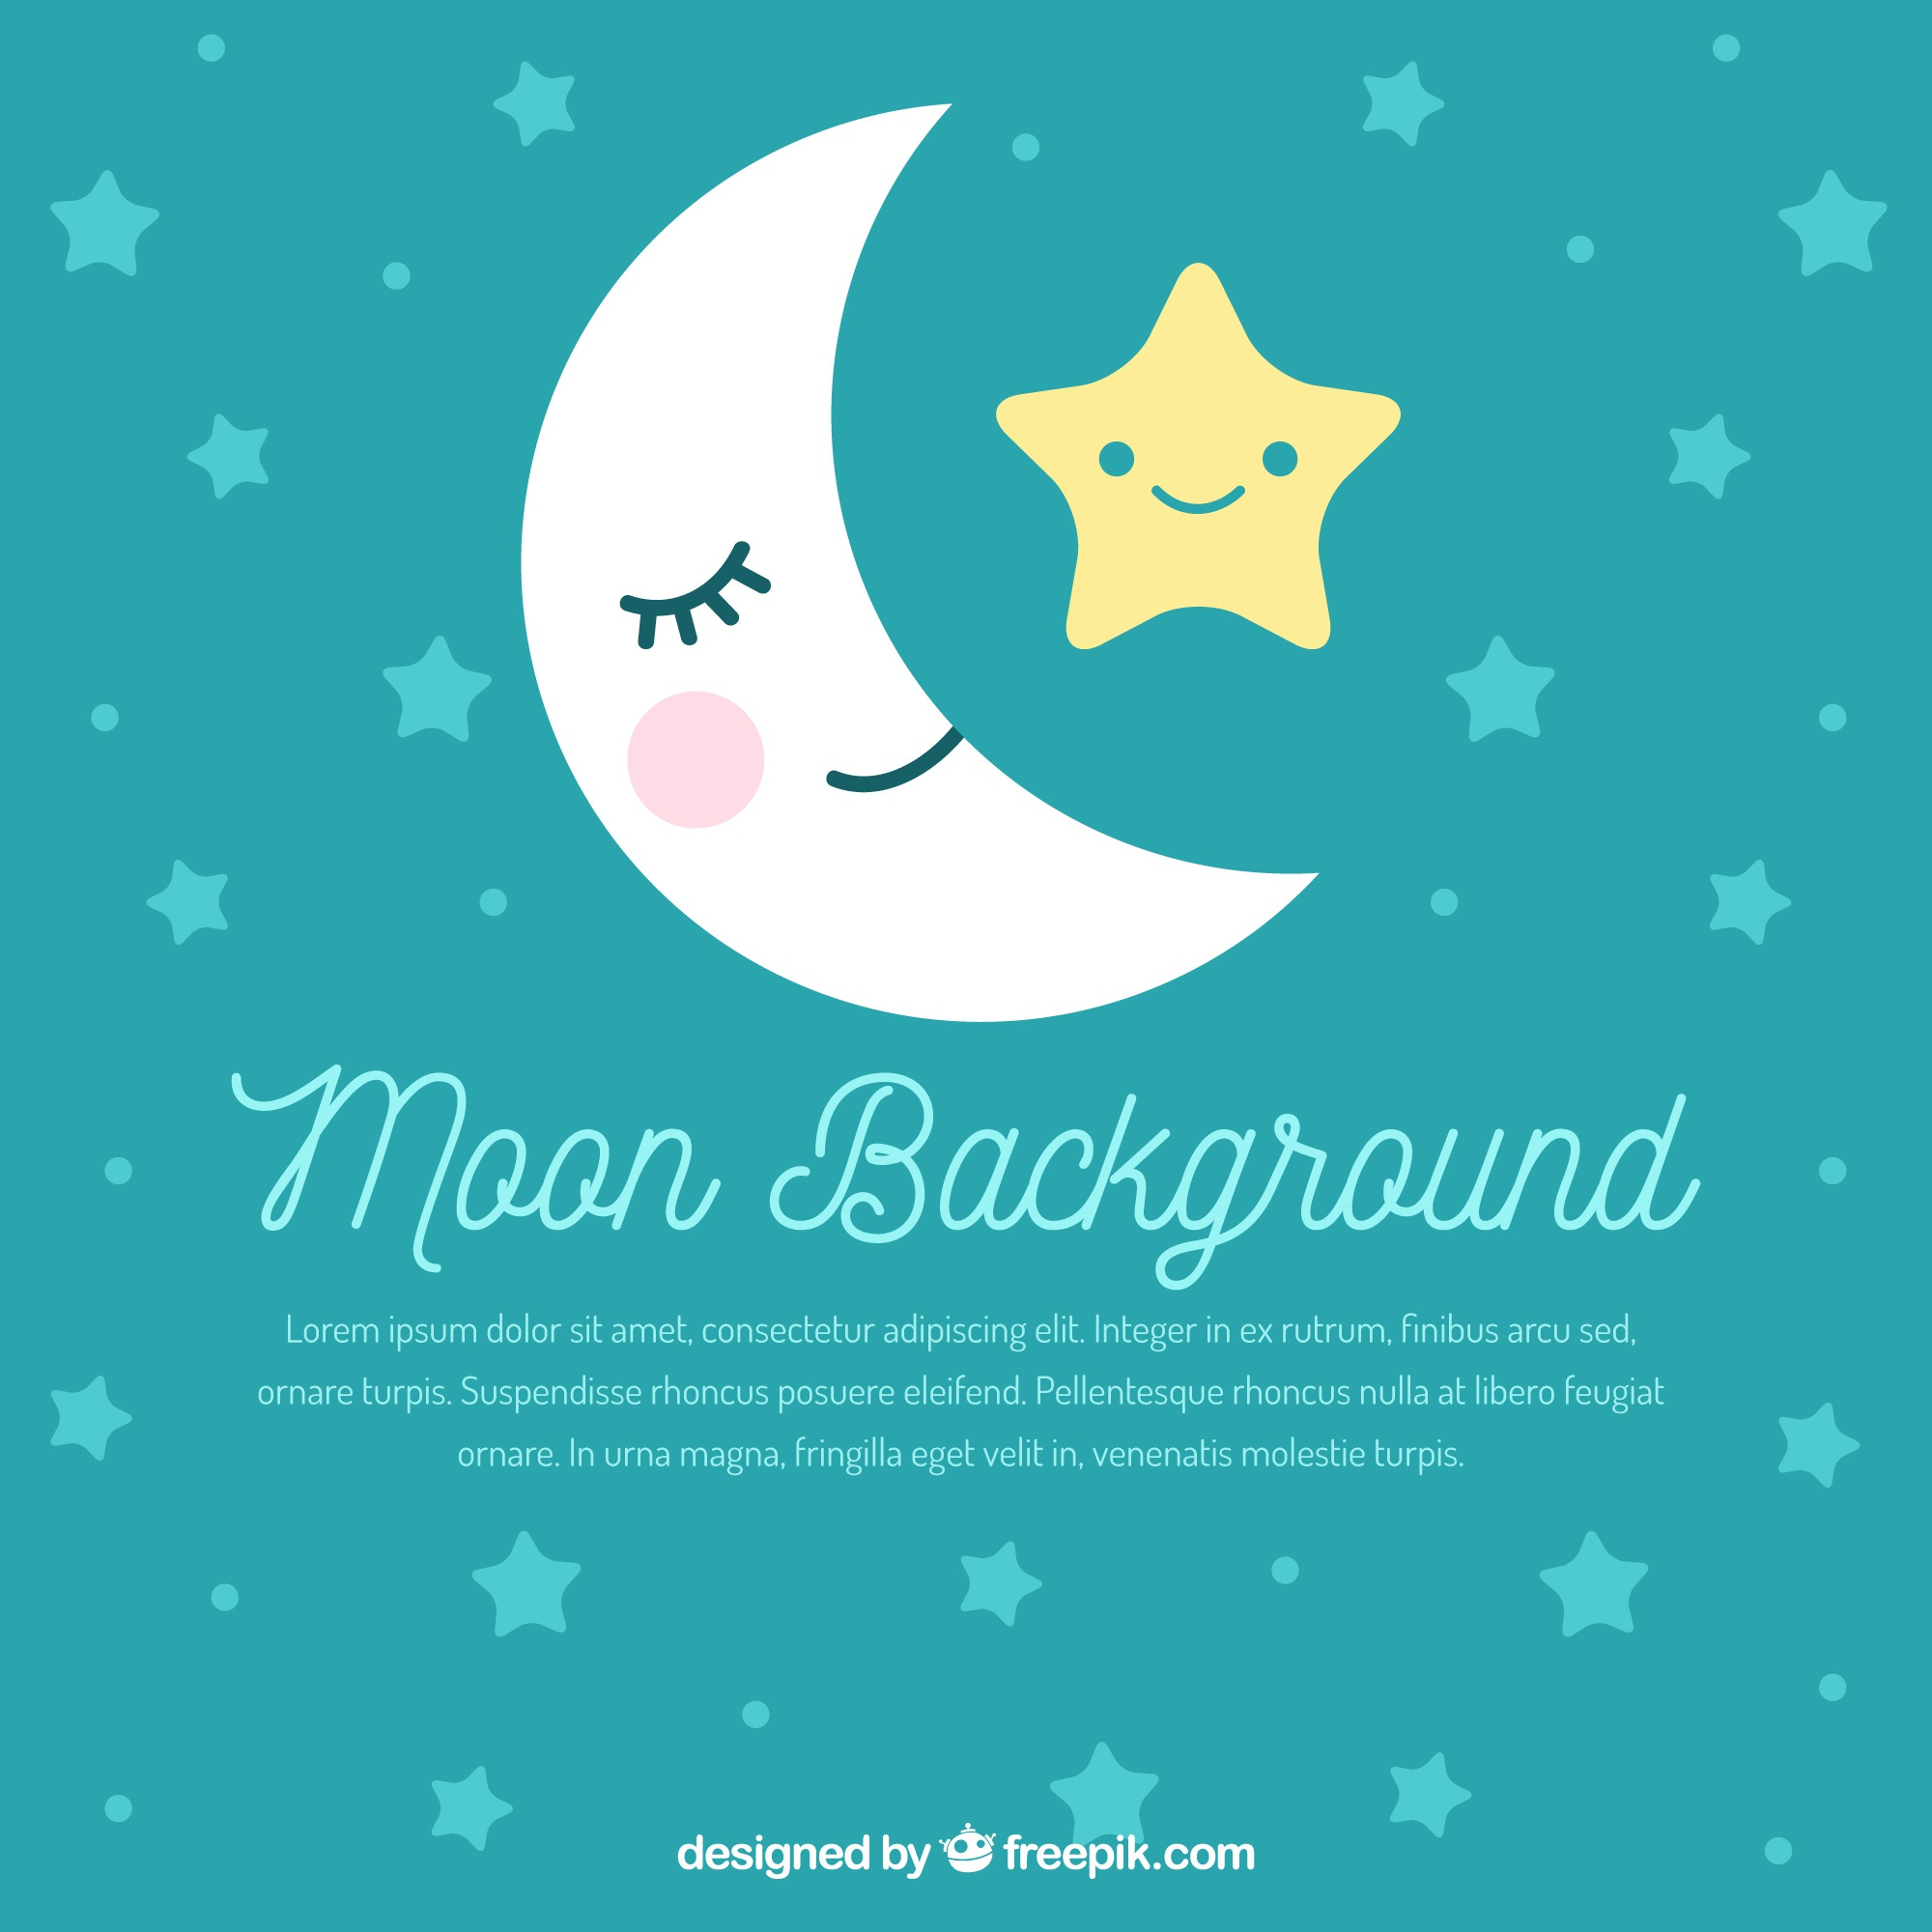 Nice background of moon and stars